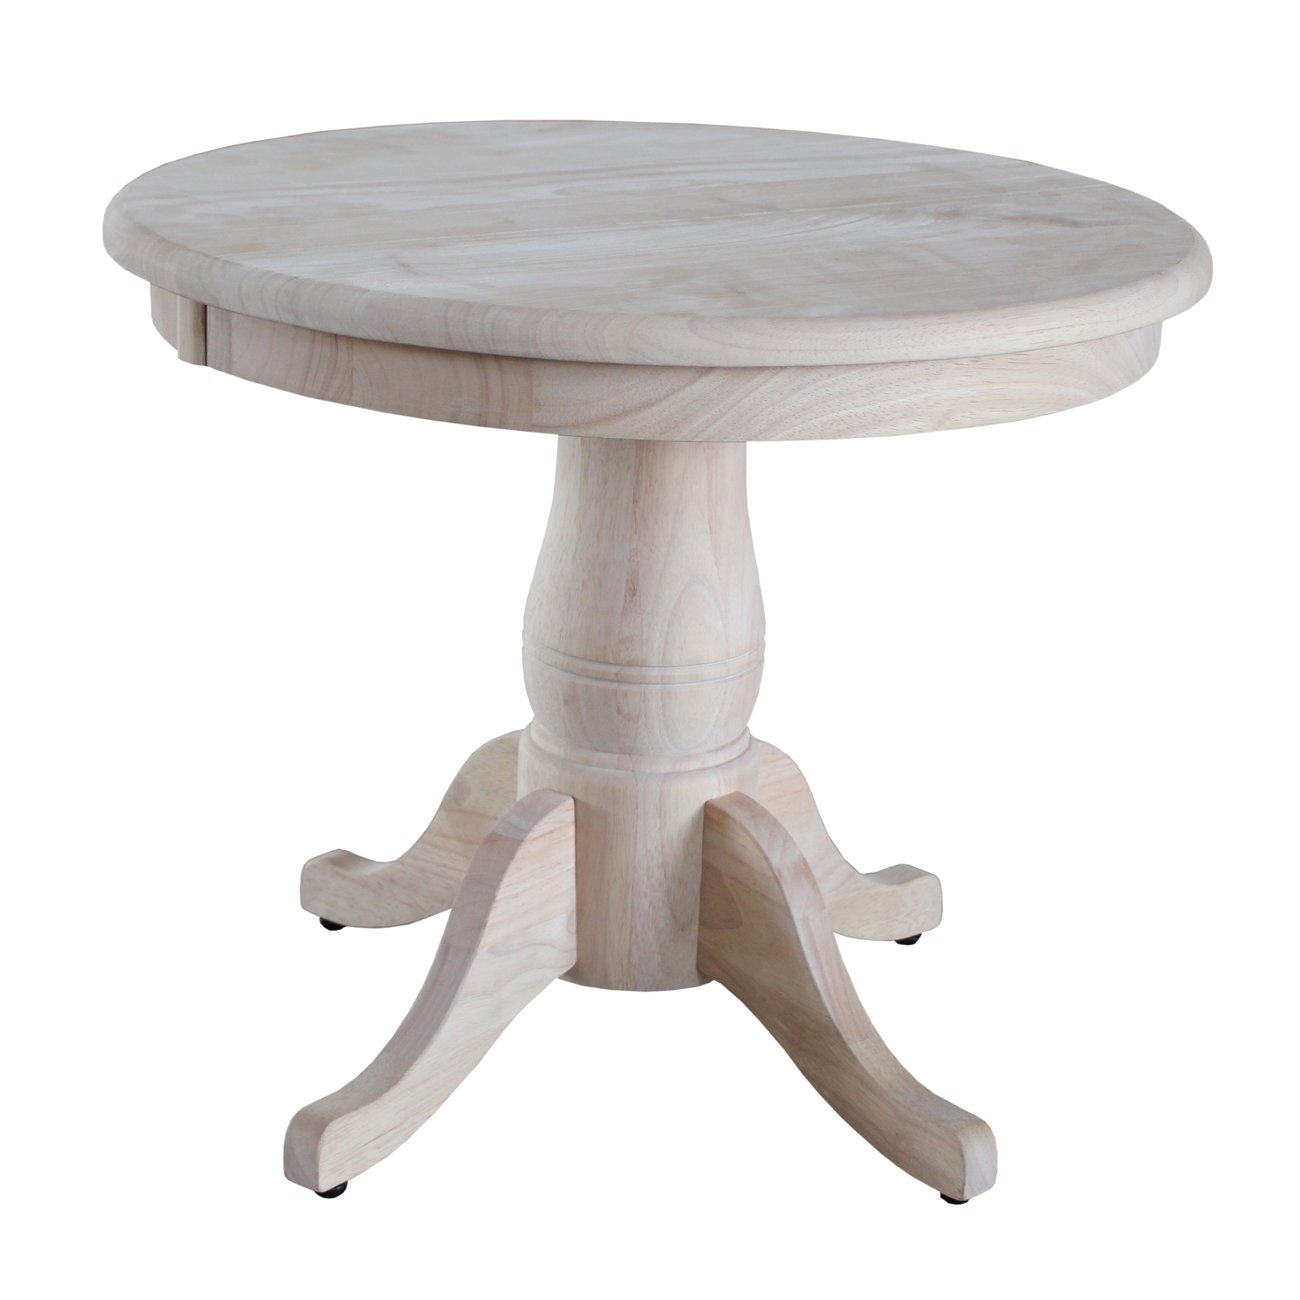 international concepts round pedestal table inch unfinished wood accent tables placemats kitchen and chairs bohemian coffee behind couch dining room office lighting outdoor